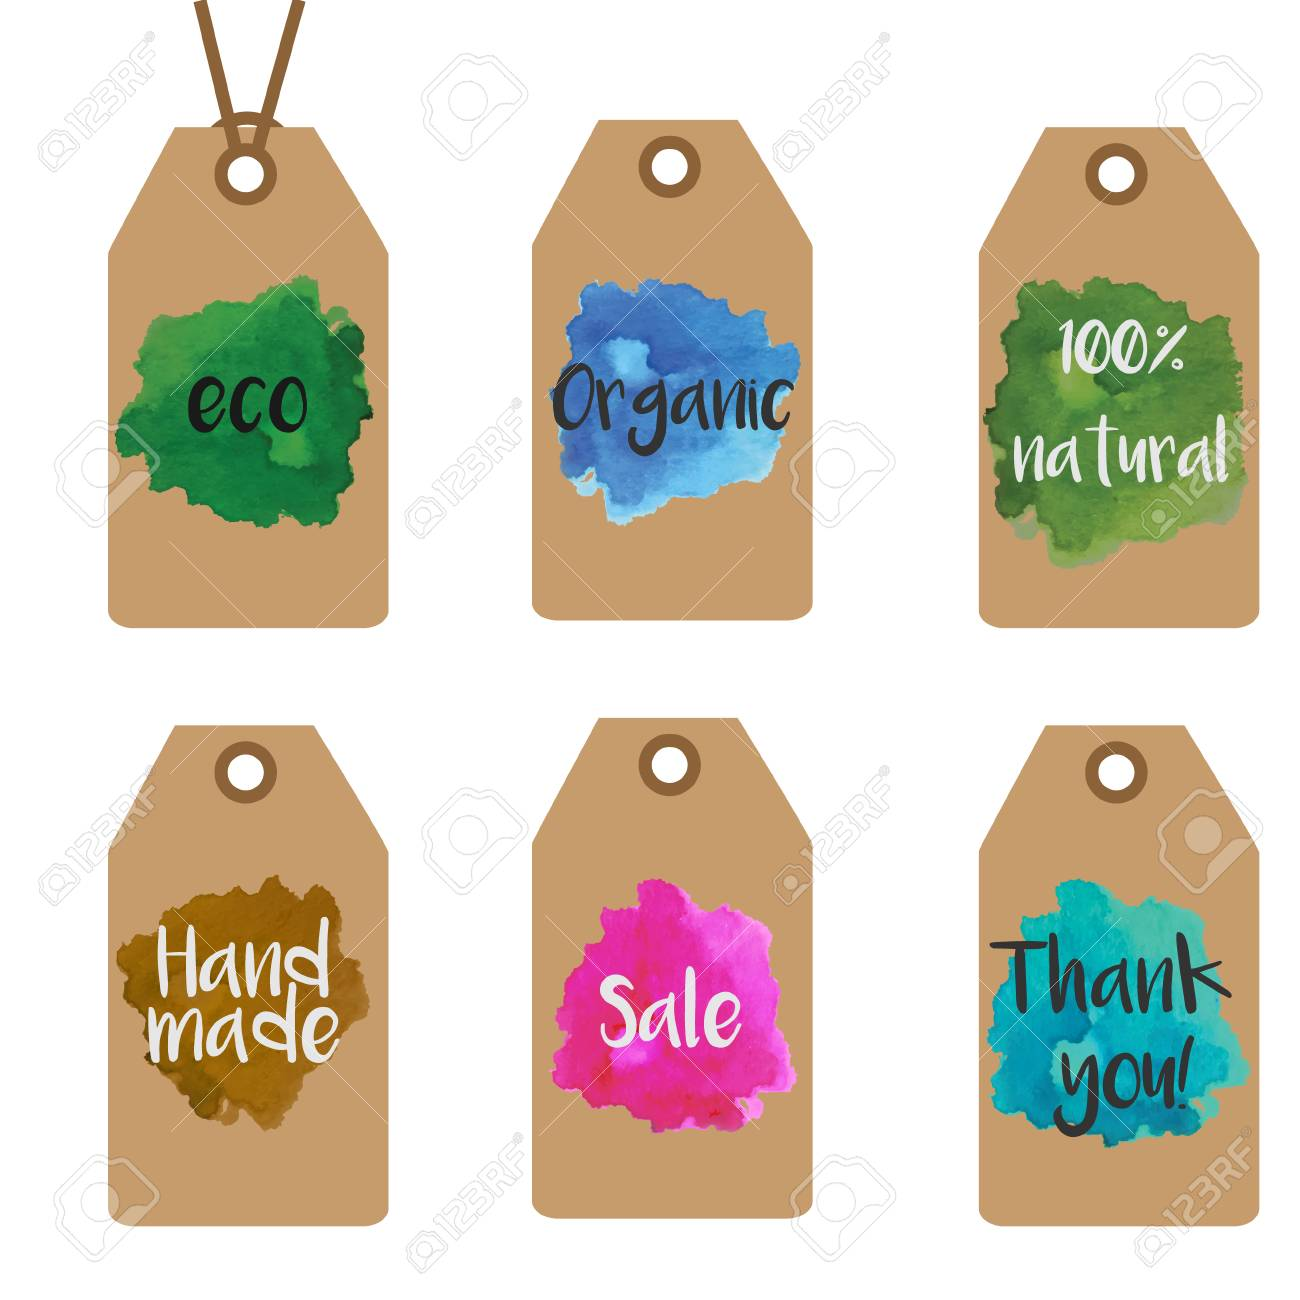 Gift tags design templates  Shopping and sale tags vector collection